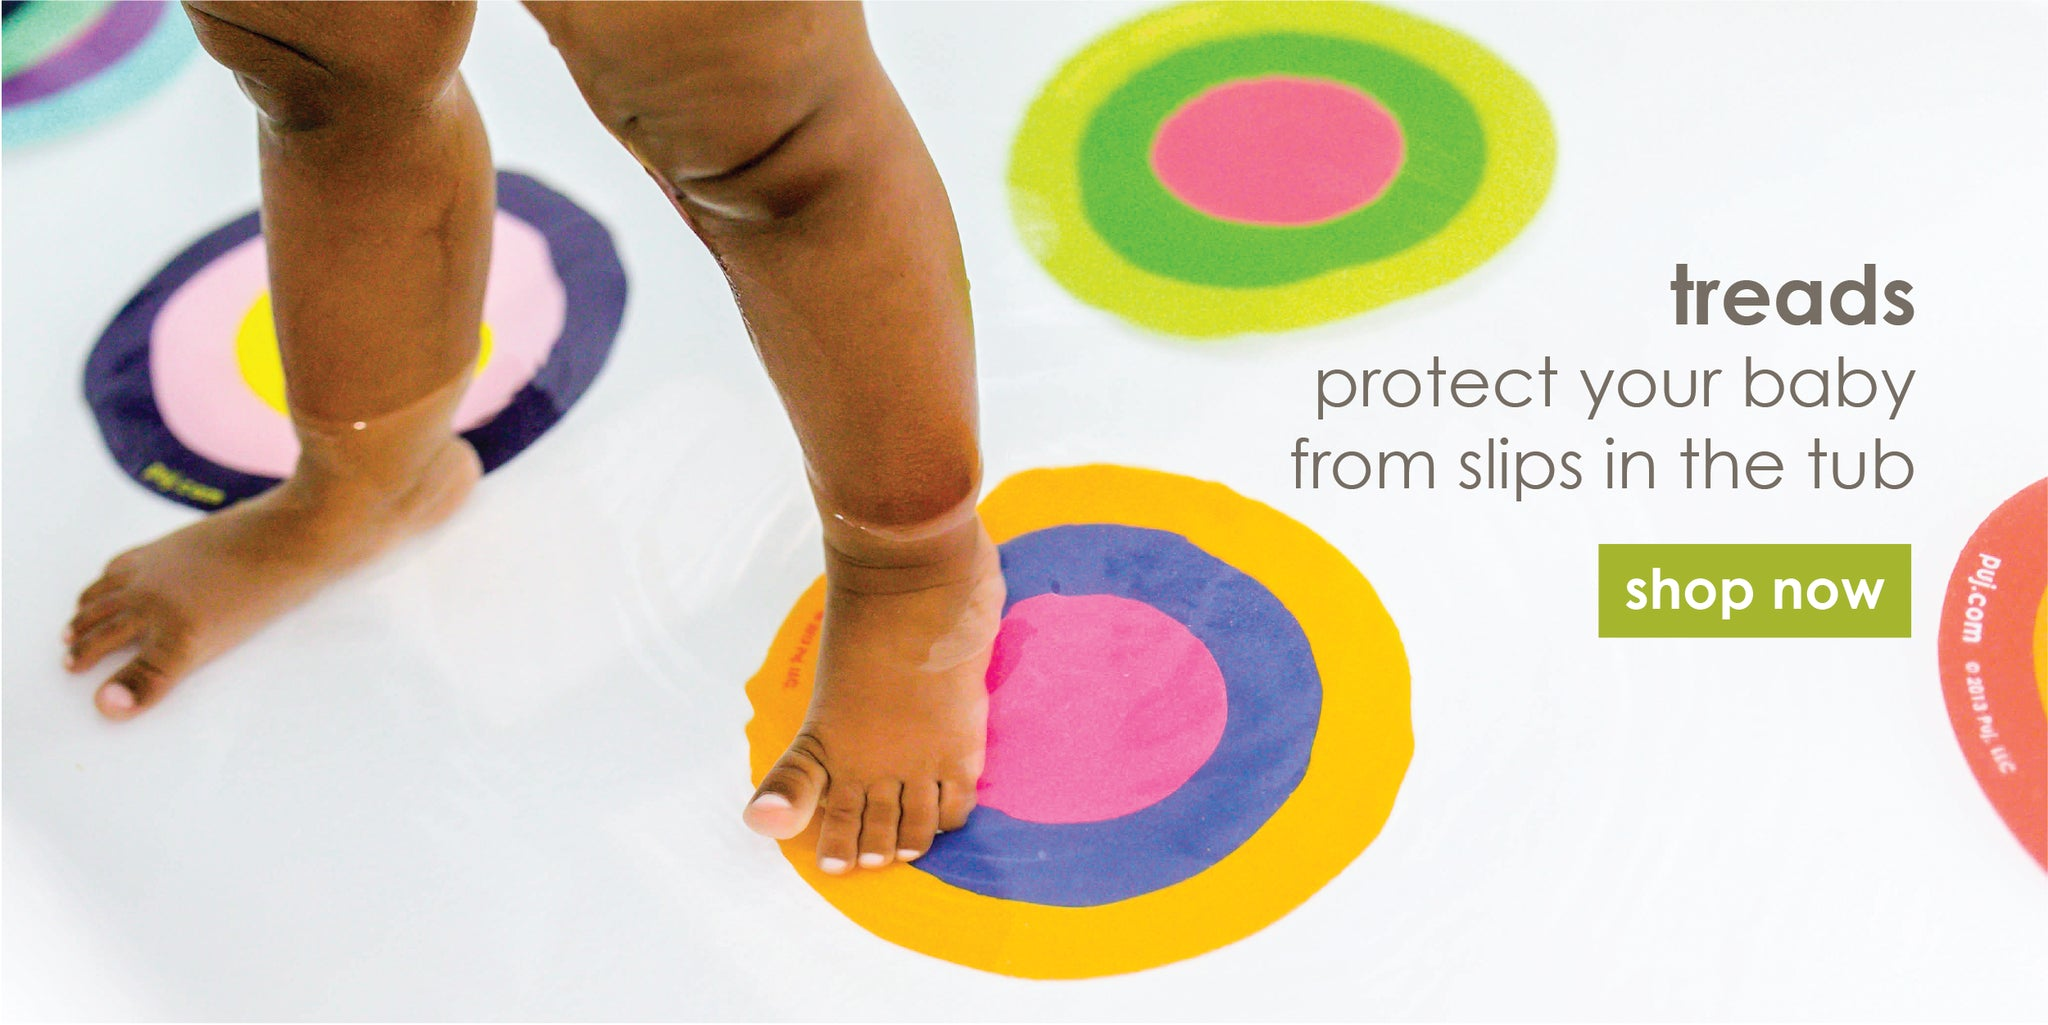 Protect your baby - no more slips and spills in the tub